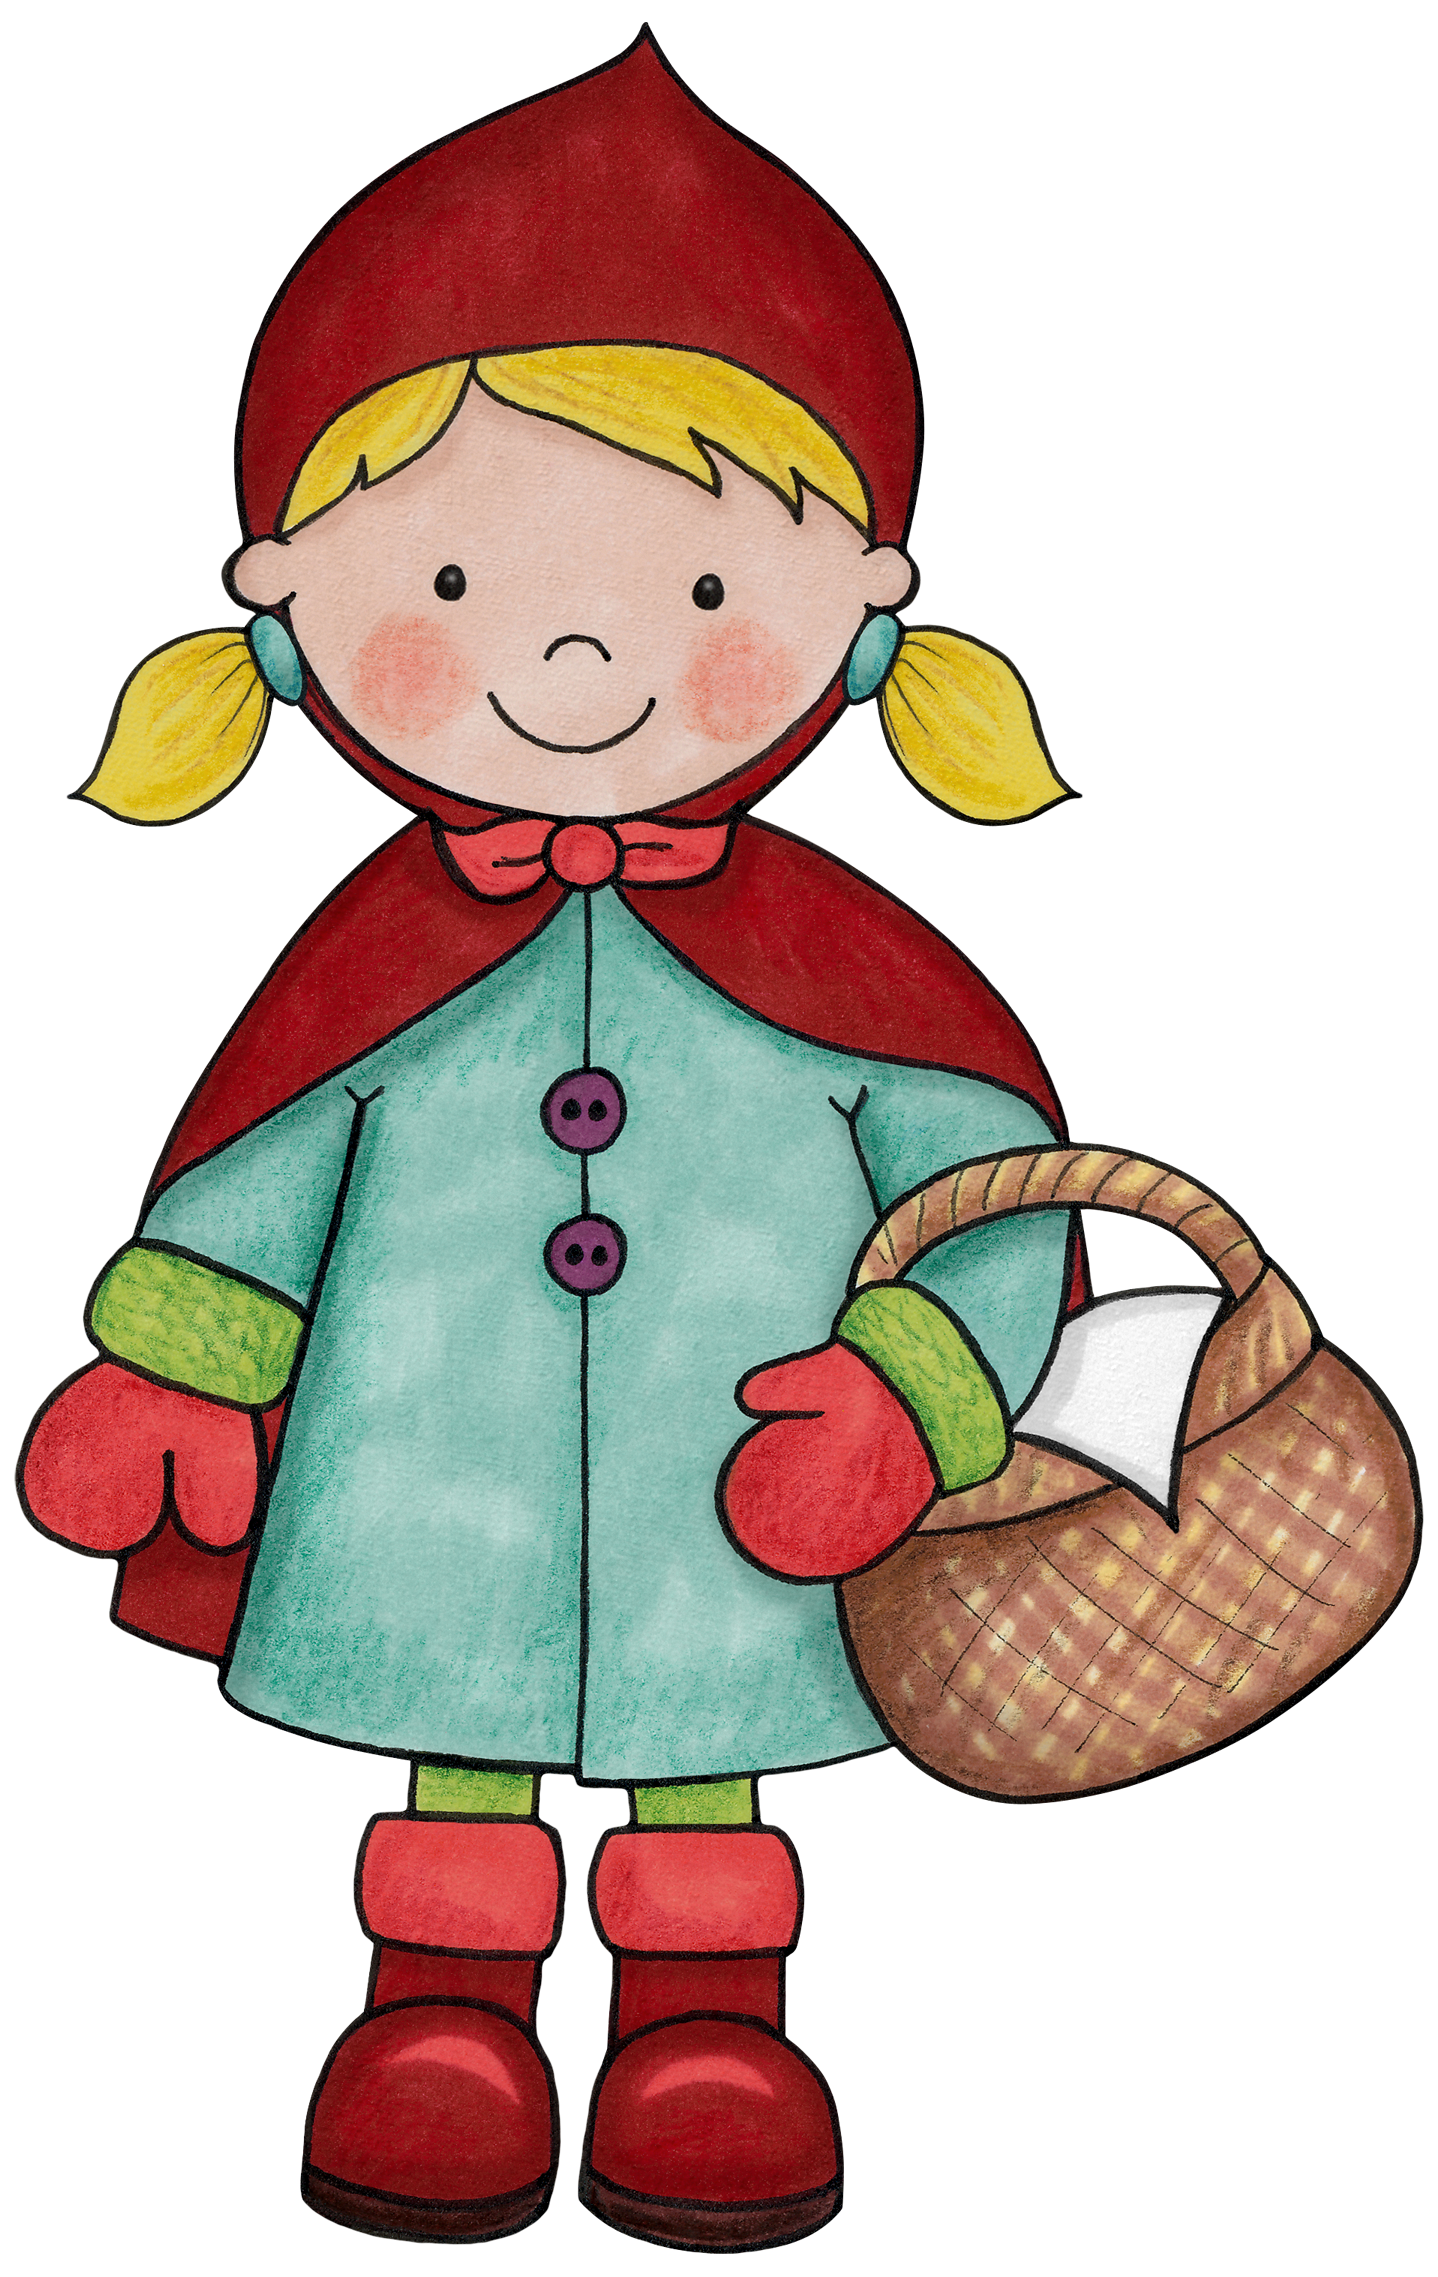 Fairytale clipart hill. Little red riding hood